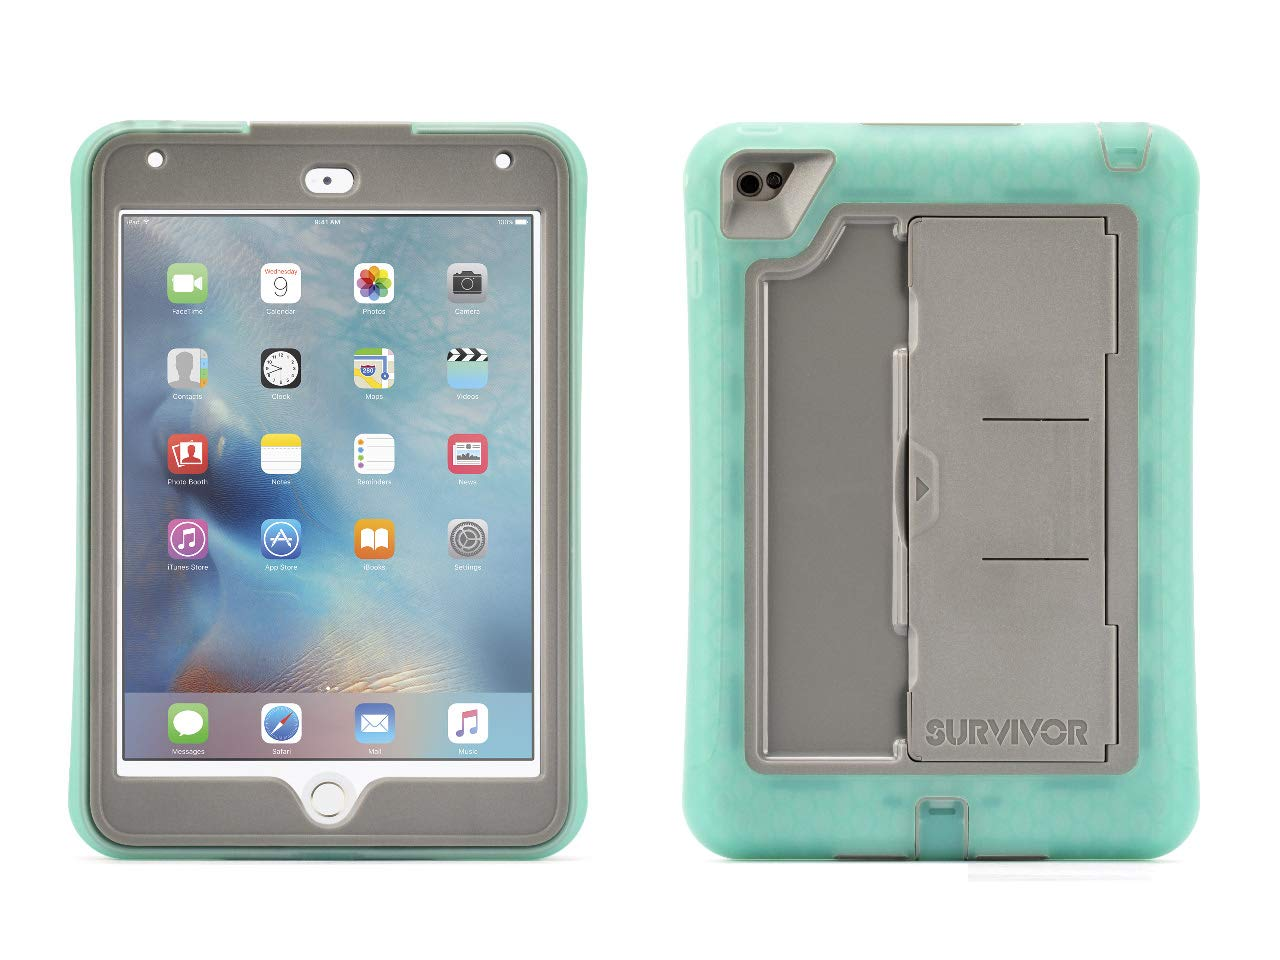 free shipping 2fbe1 ad136 Griffin iPad Mini 4 Case with Built-in Stand, Green and Grey Survivor Slim,  [Slim] [Protective] [Shock Absorption] [Built-in Screen Protection] ...